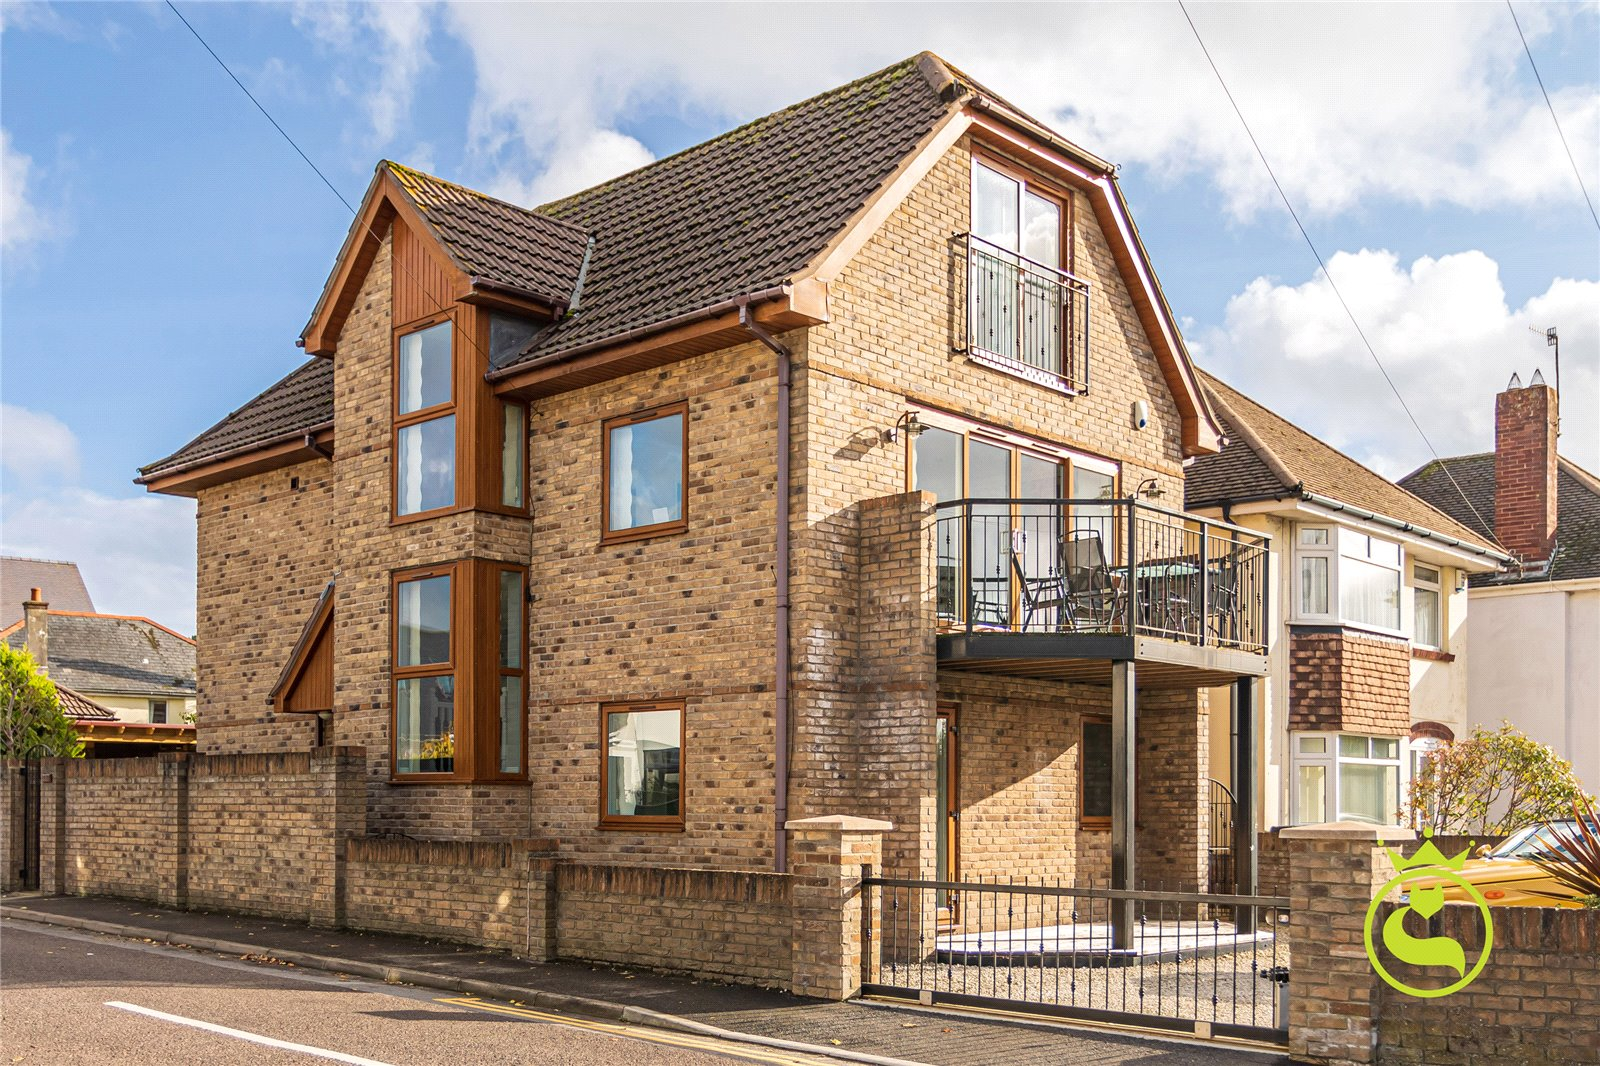 5 bed house for sale in Sandbanks Road, Whitecliff, BH14